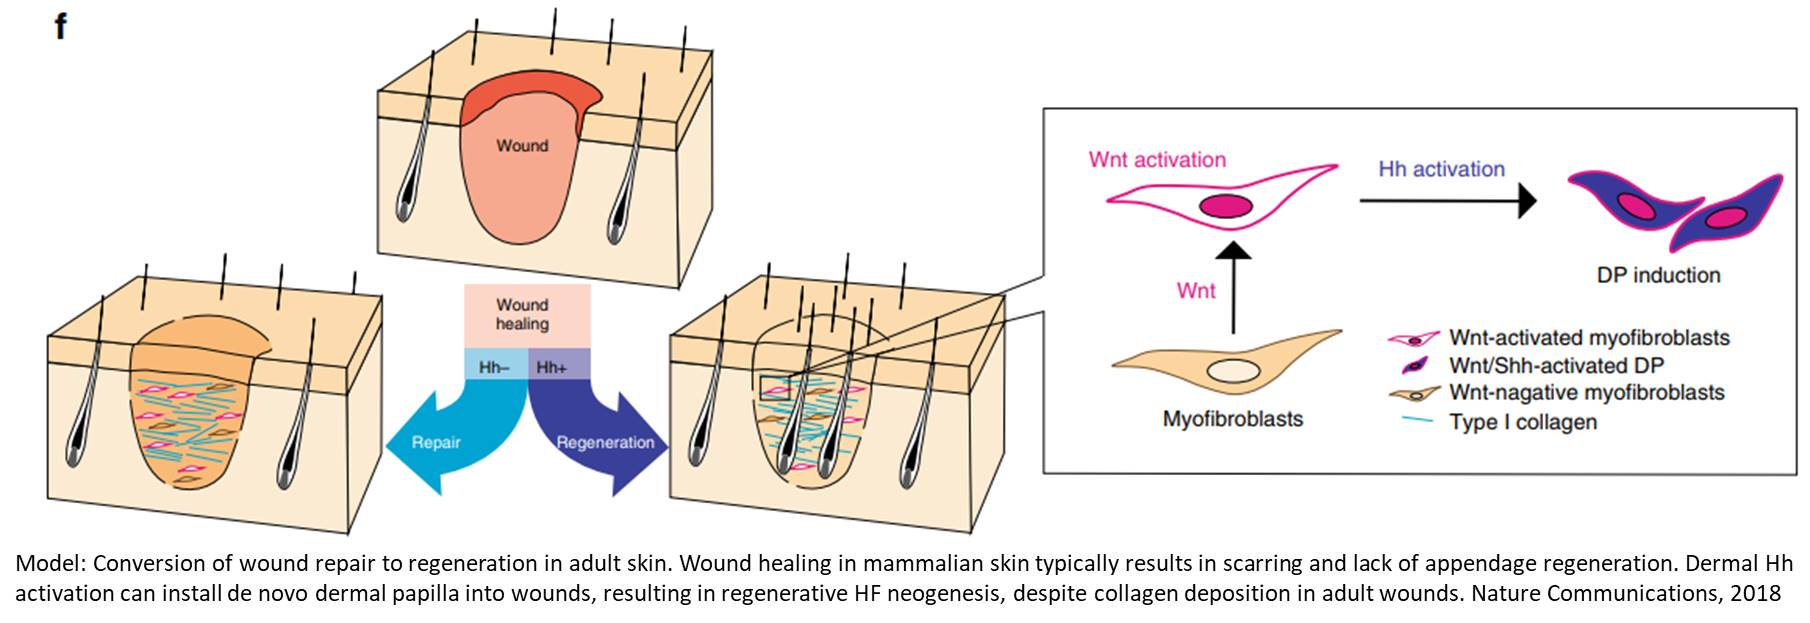 Regrowing hair on wounded skin